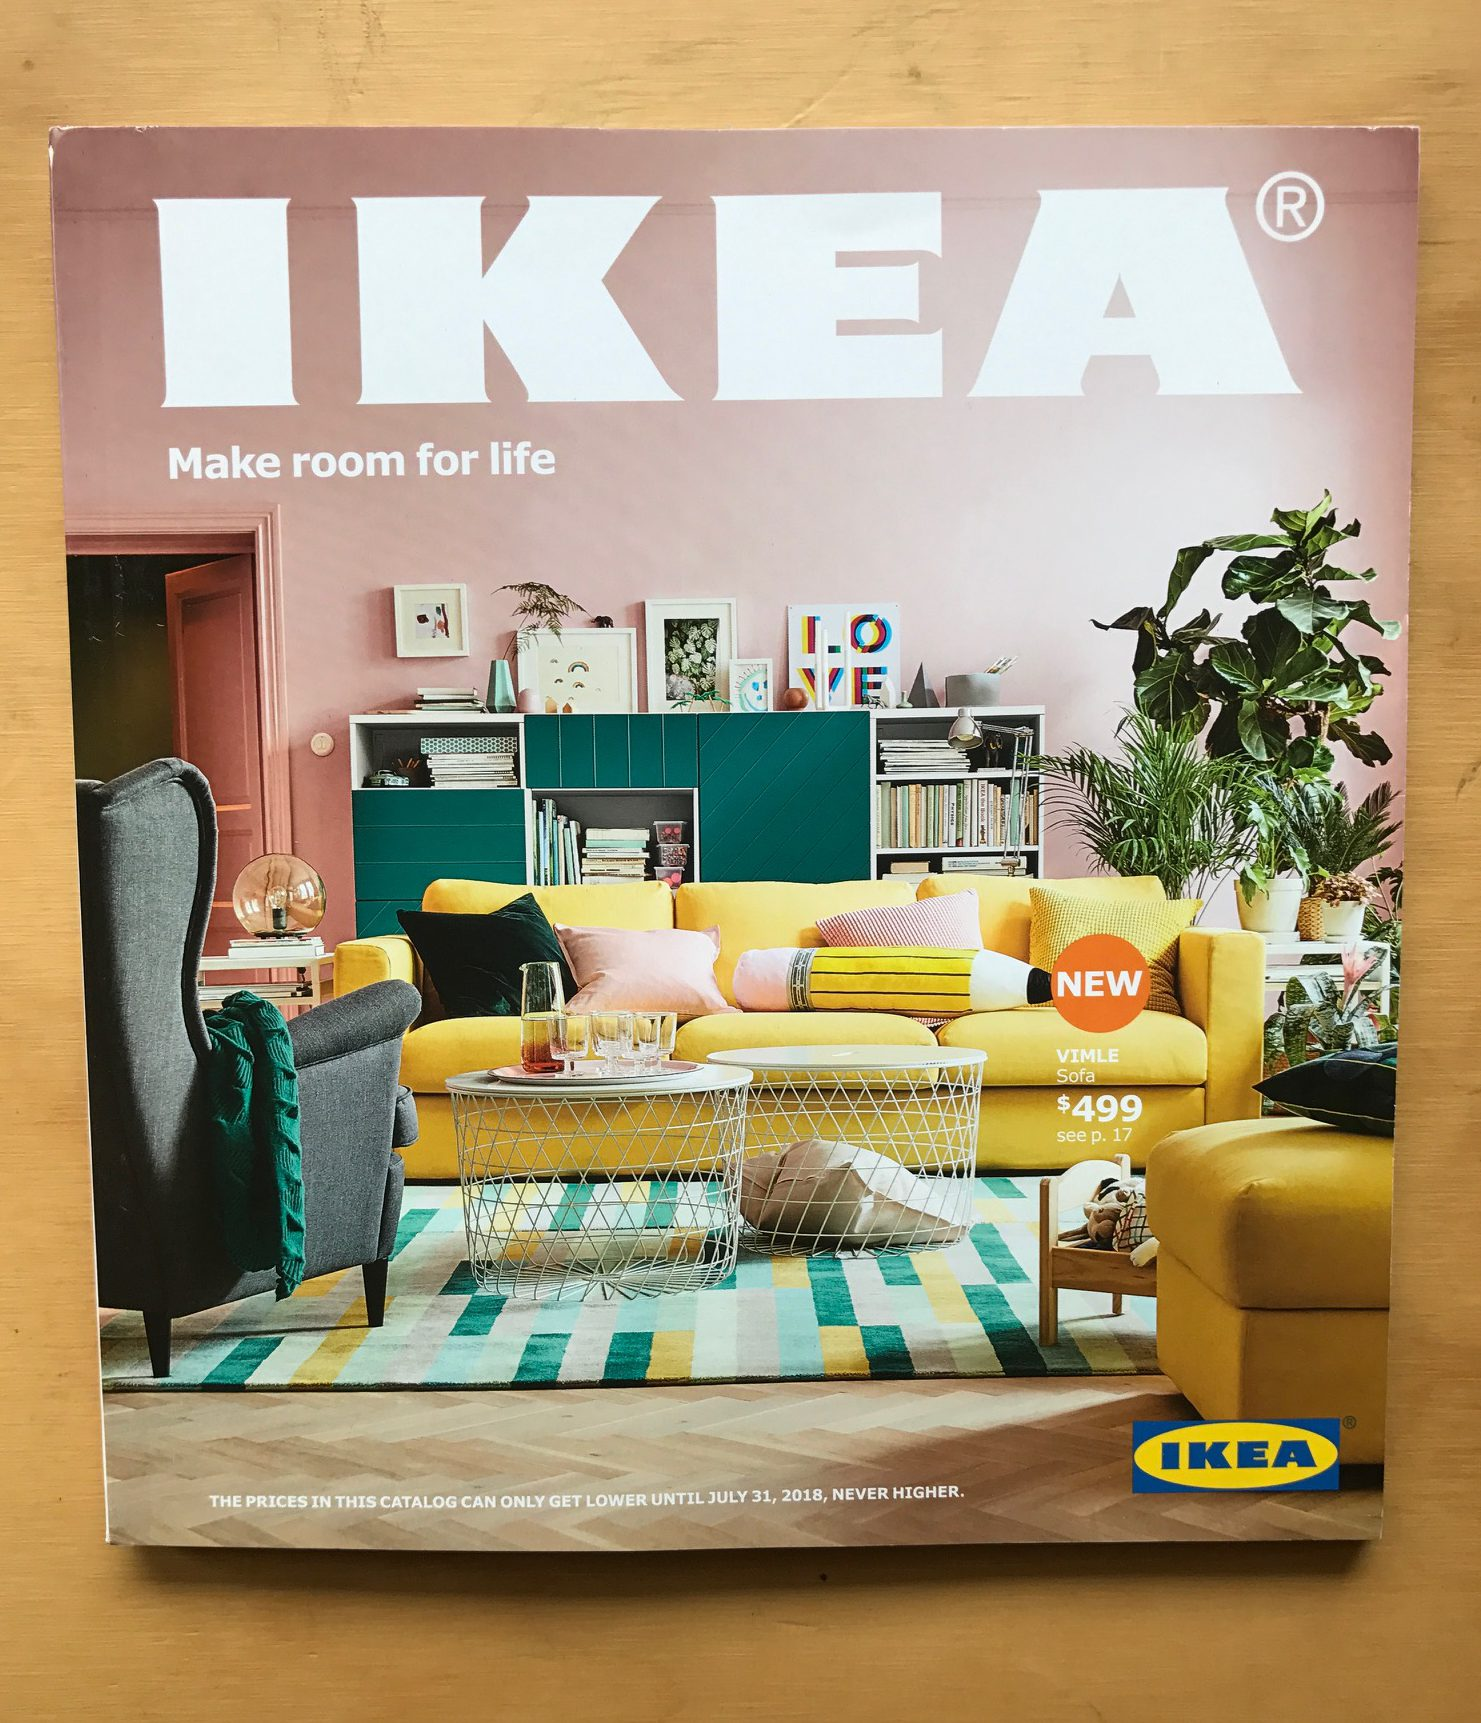 Ikea Catalogue 2018 Defining Domestic Bliss In Different